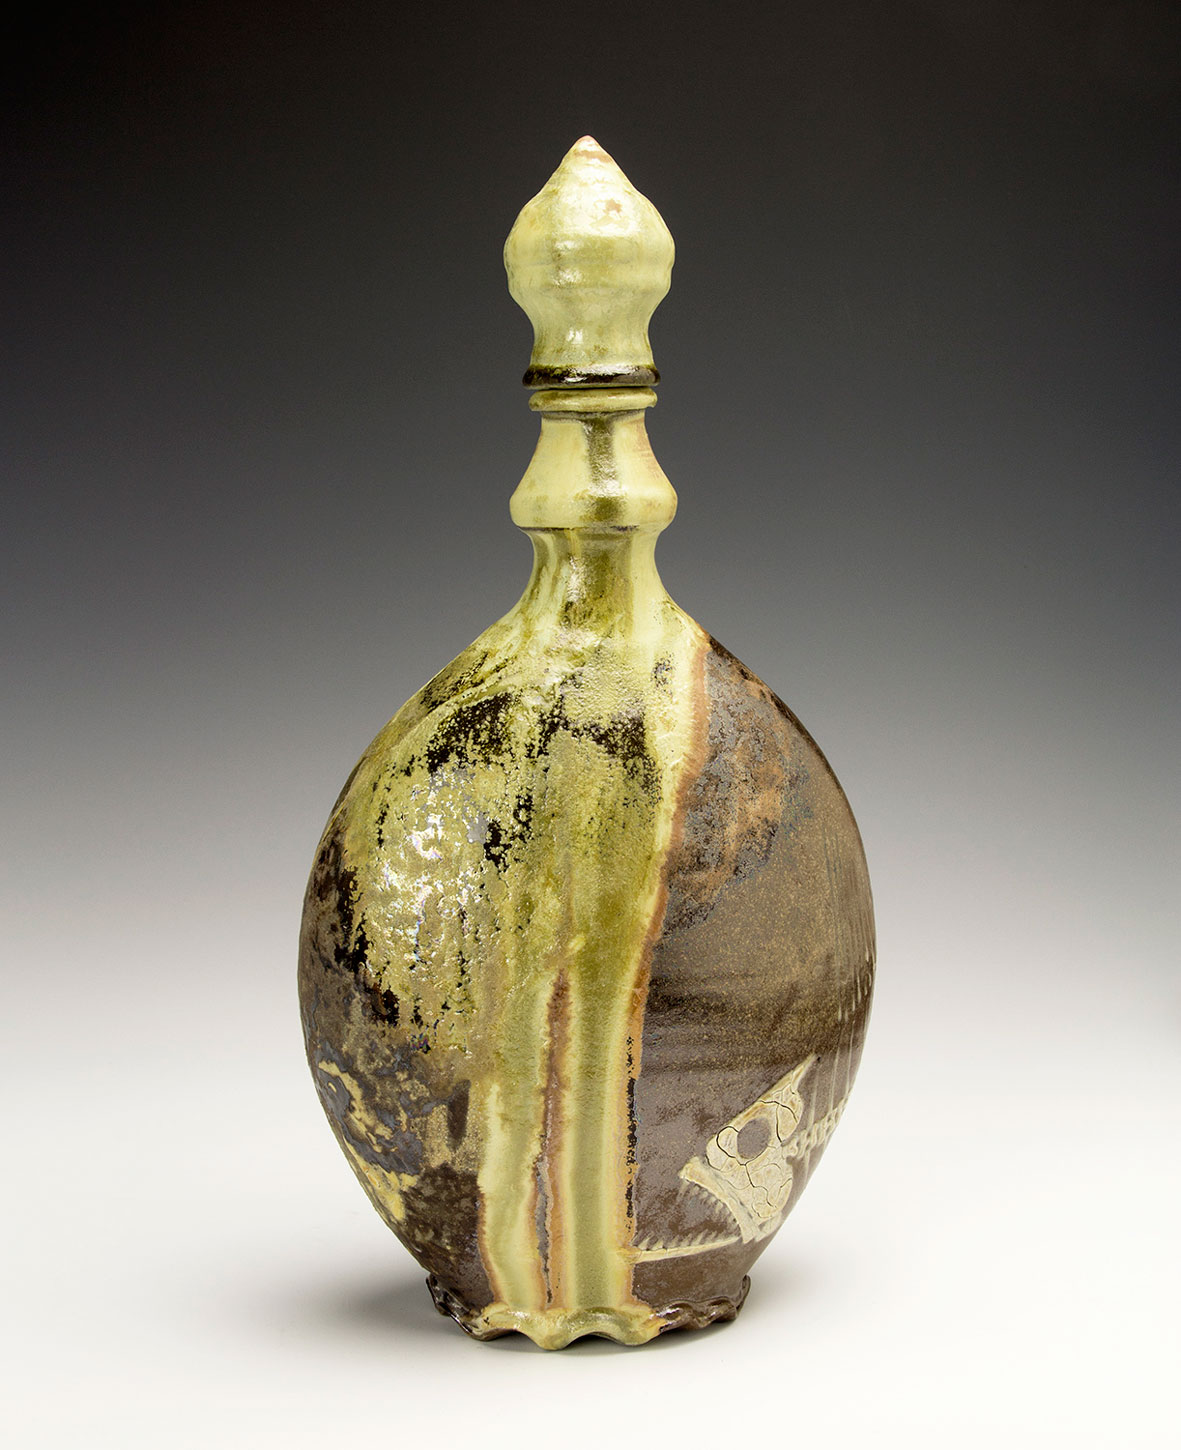 Ceramic-Art-Spirit-Decanter-Bruce-Gholson.jpg